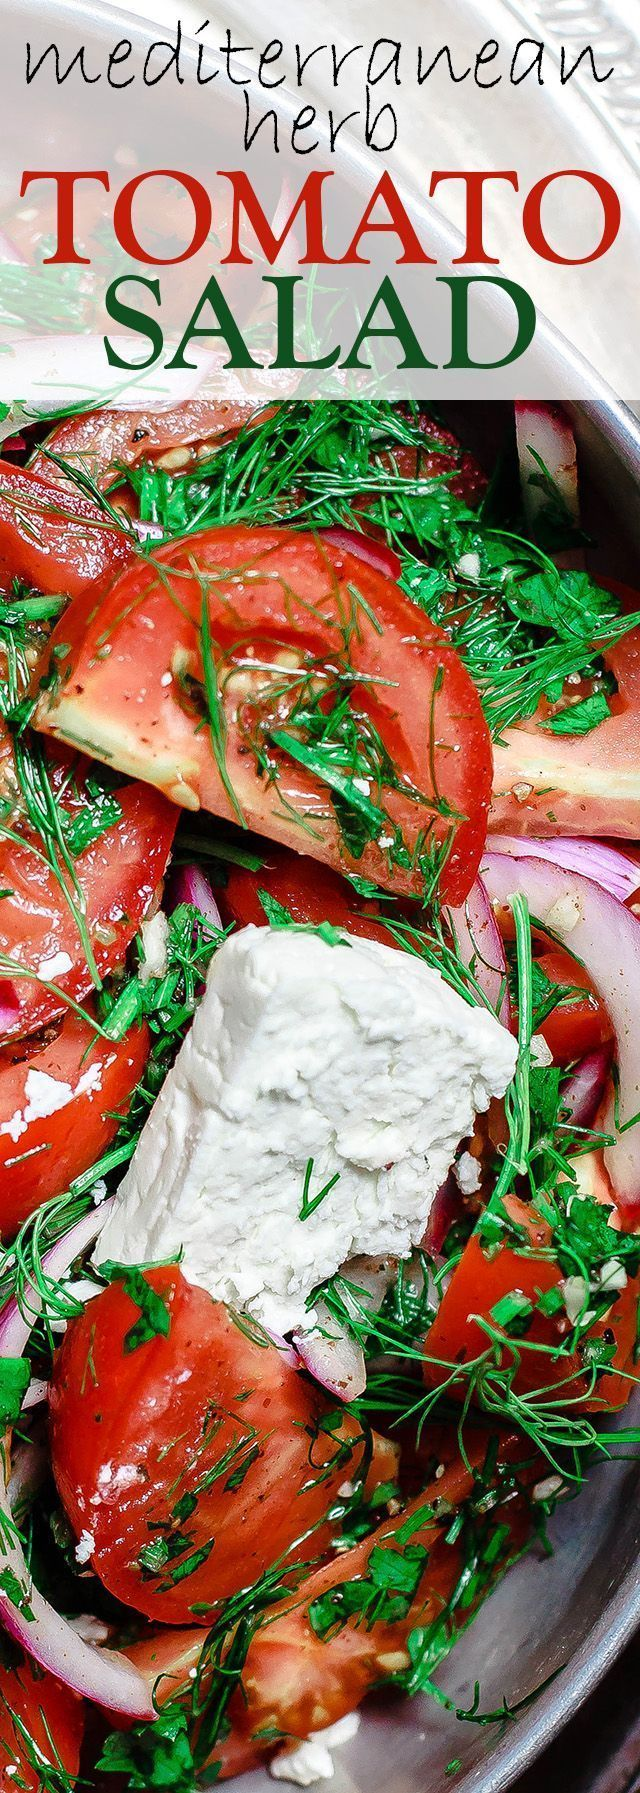 Mediterranean Fresh Herb Tomato Salad   The Mediterranean Dish. Tomatoes and red onions with fresh parsley and dill, doused in citrus and olive oil. Vegan. Gluten-free. Click the image for the recipe and visit http://TheMediterraneanDish.com for more healthy rec